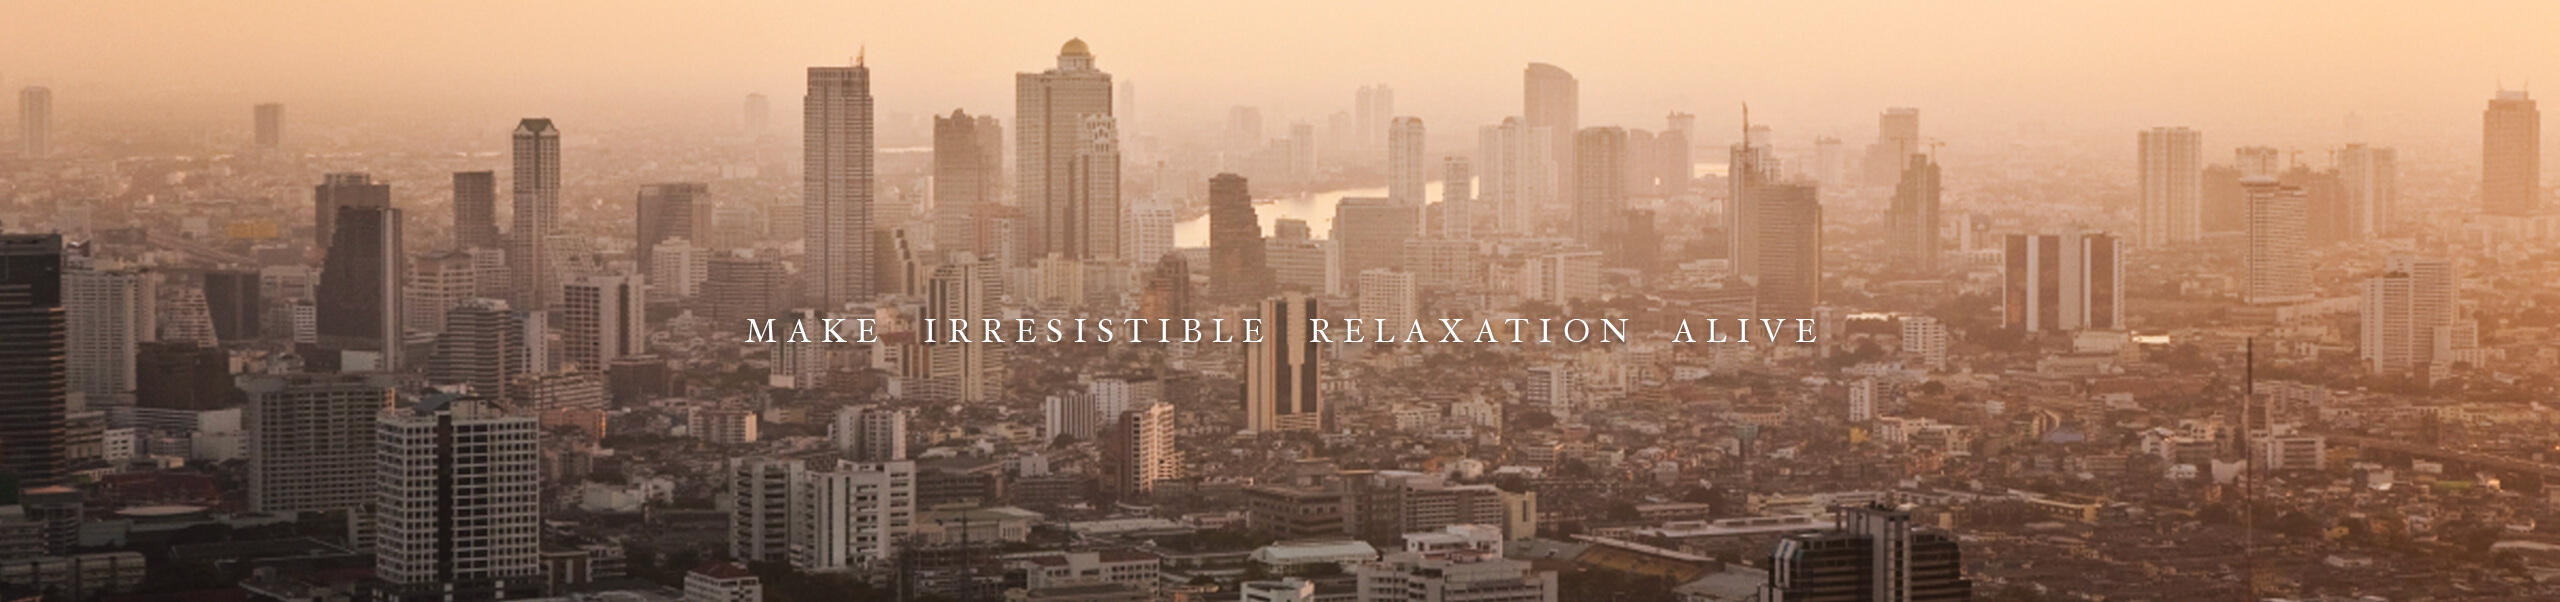 Make irresistable relaxation alive